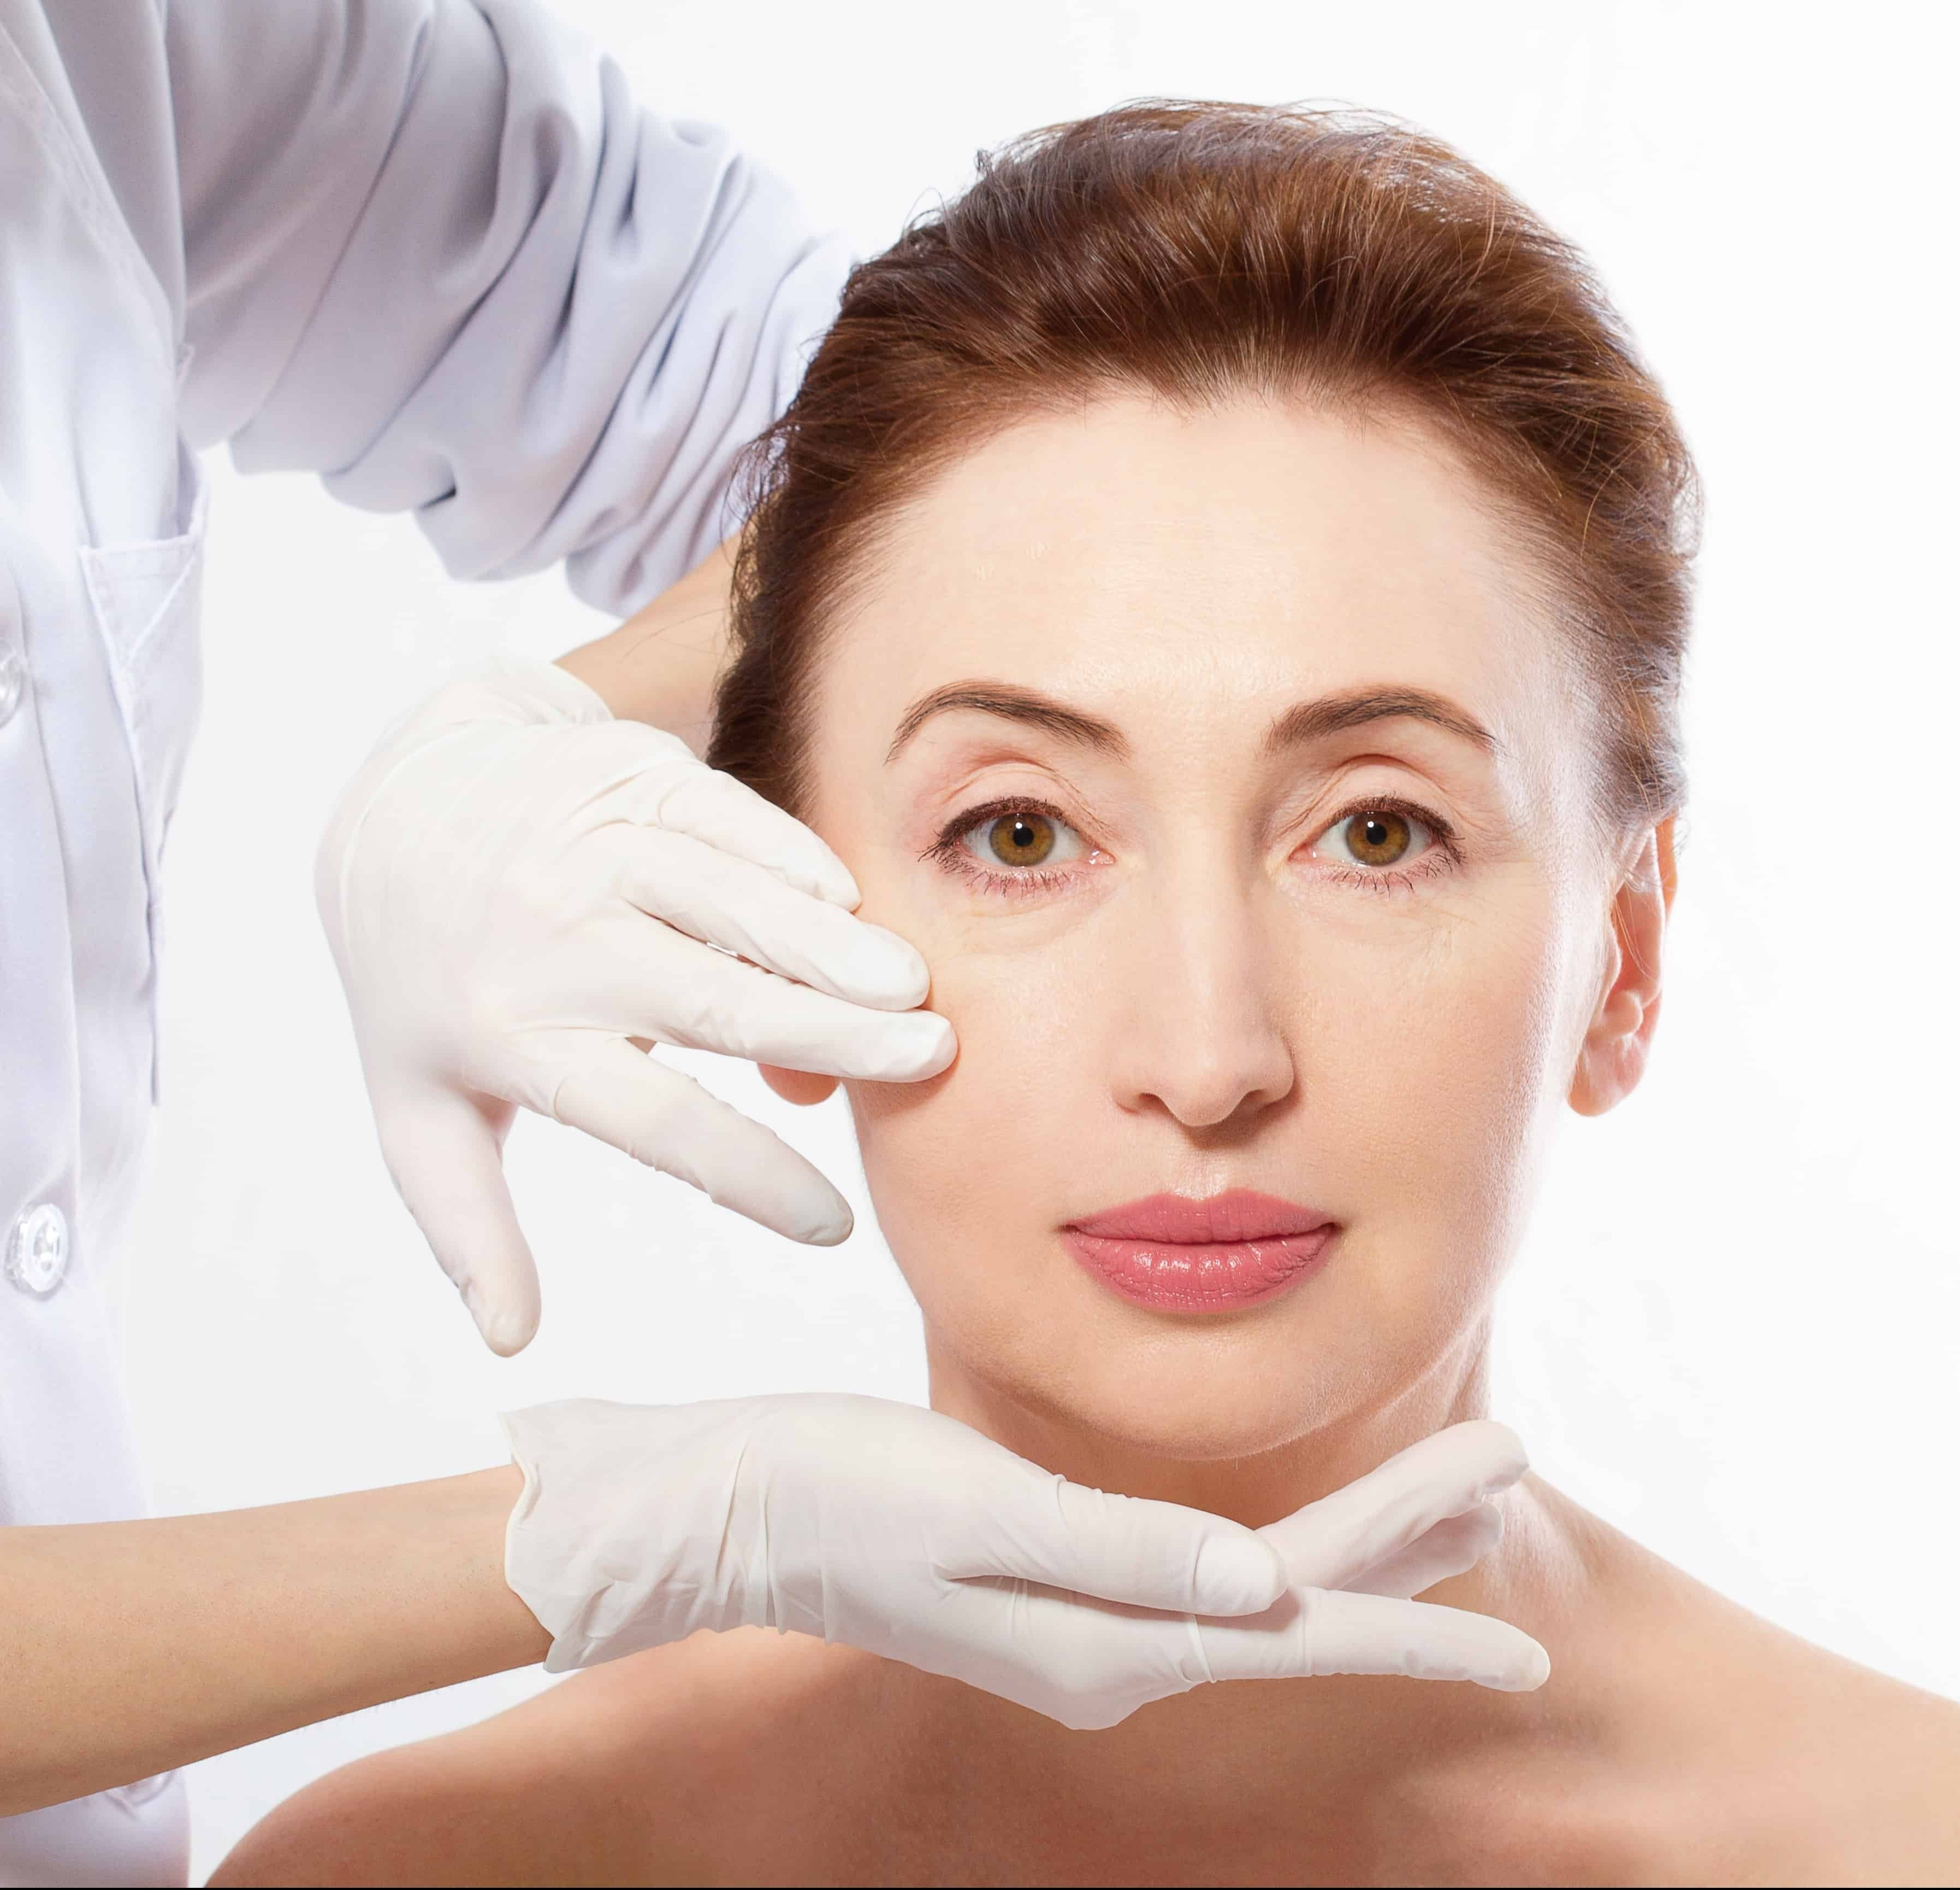 Do the health benefits of plastic surgery outweigh the risks? 1